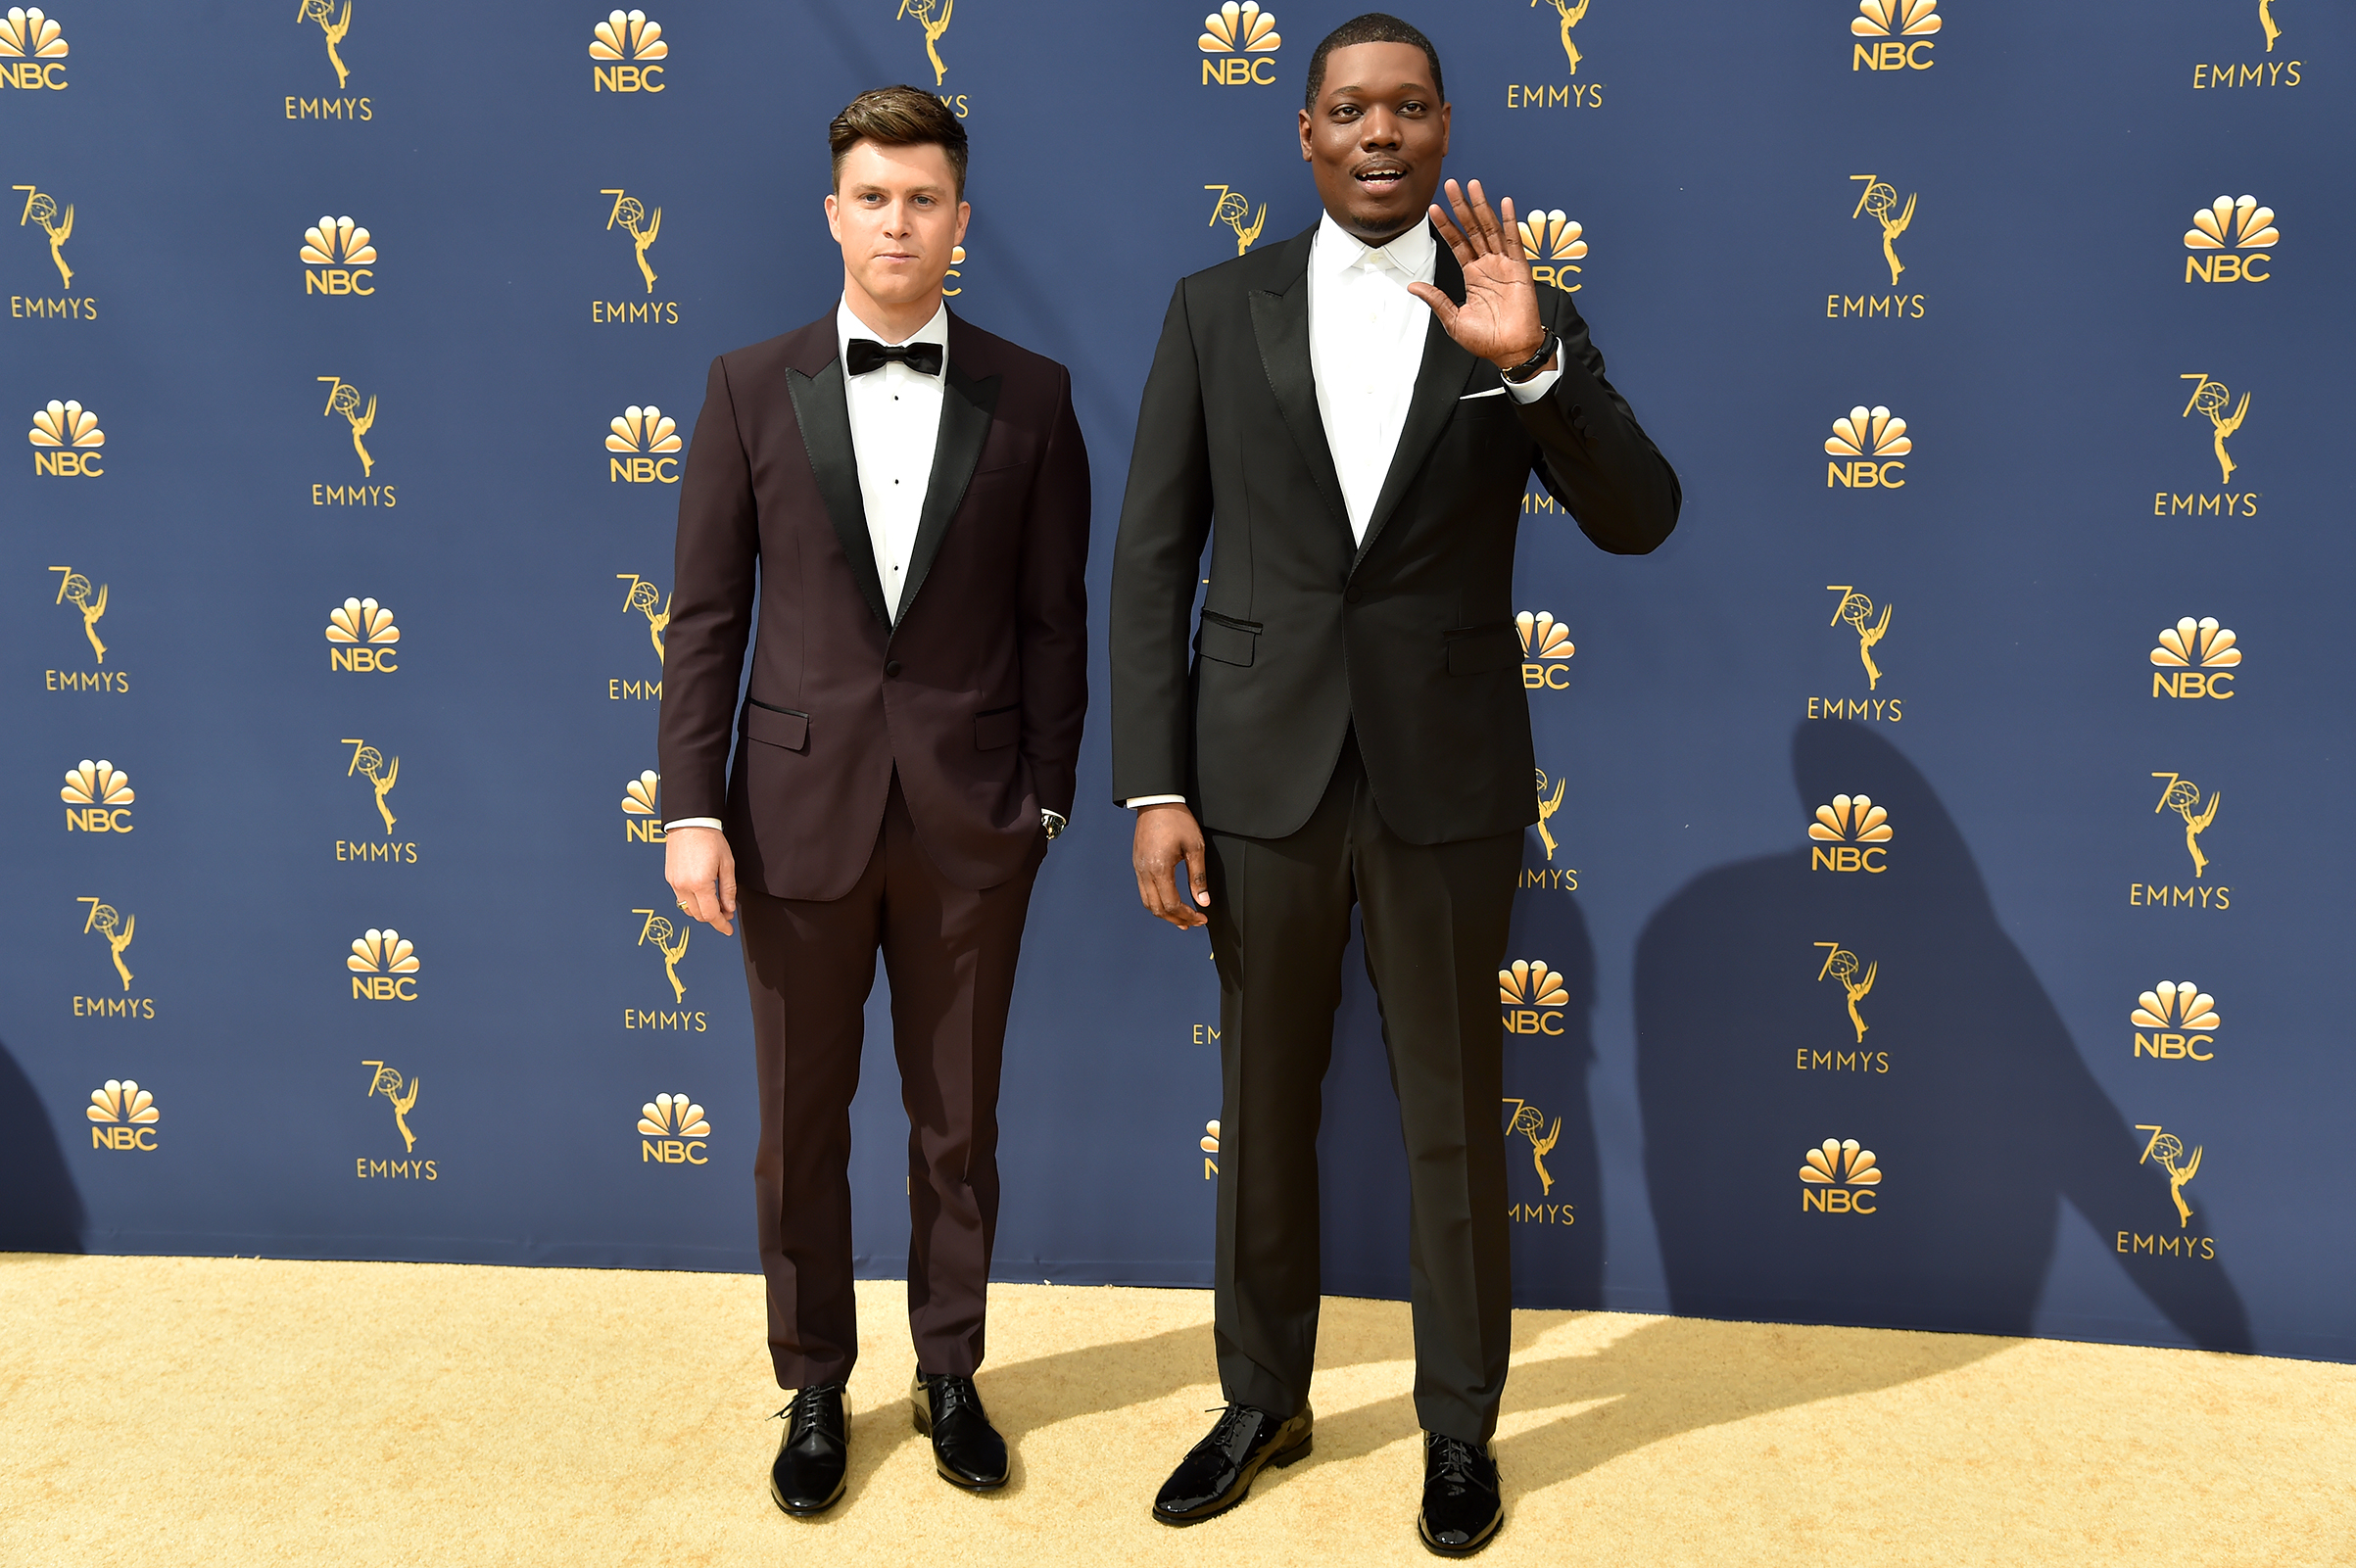 Hosts Colin Jost and Michael Che arrive at the 70th Emmy Awards on Sept. 17.